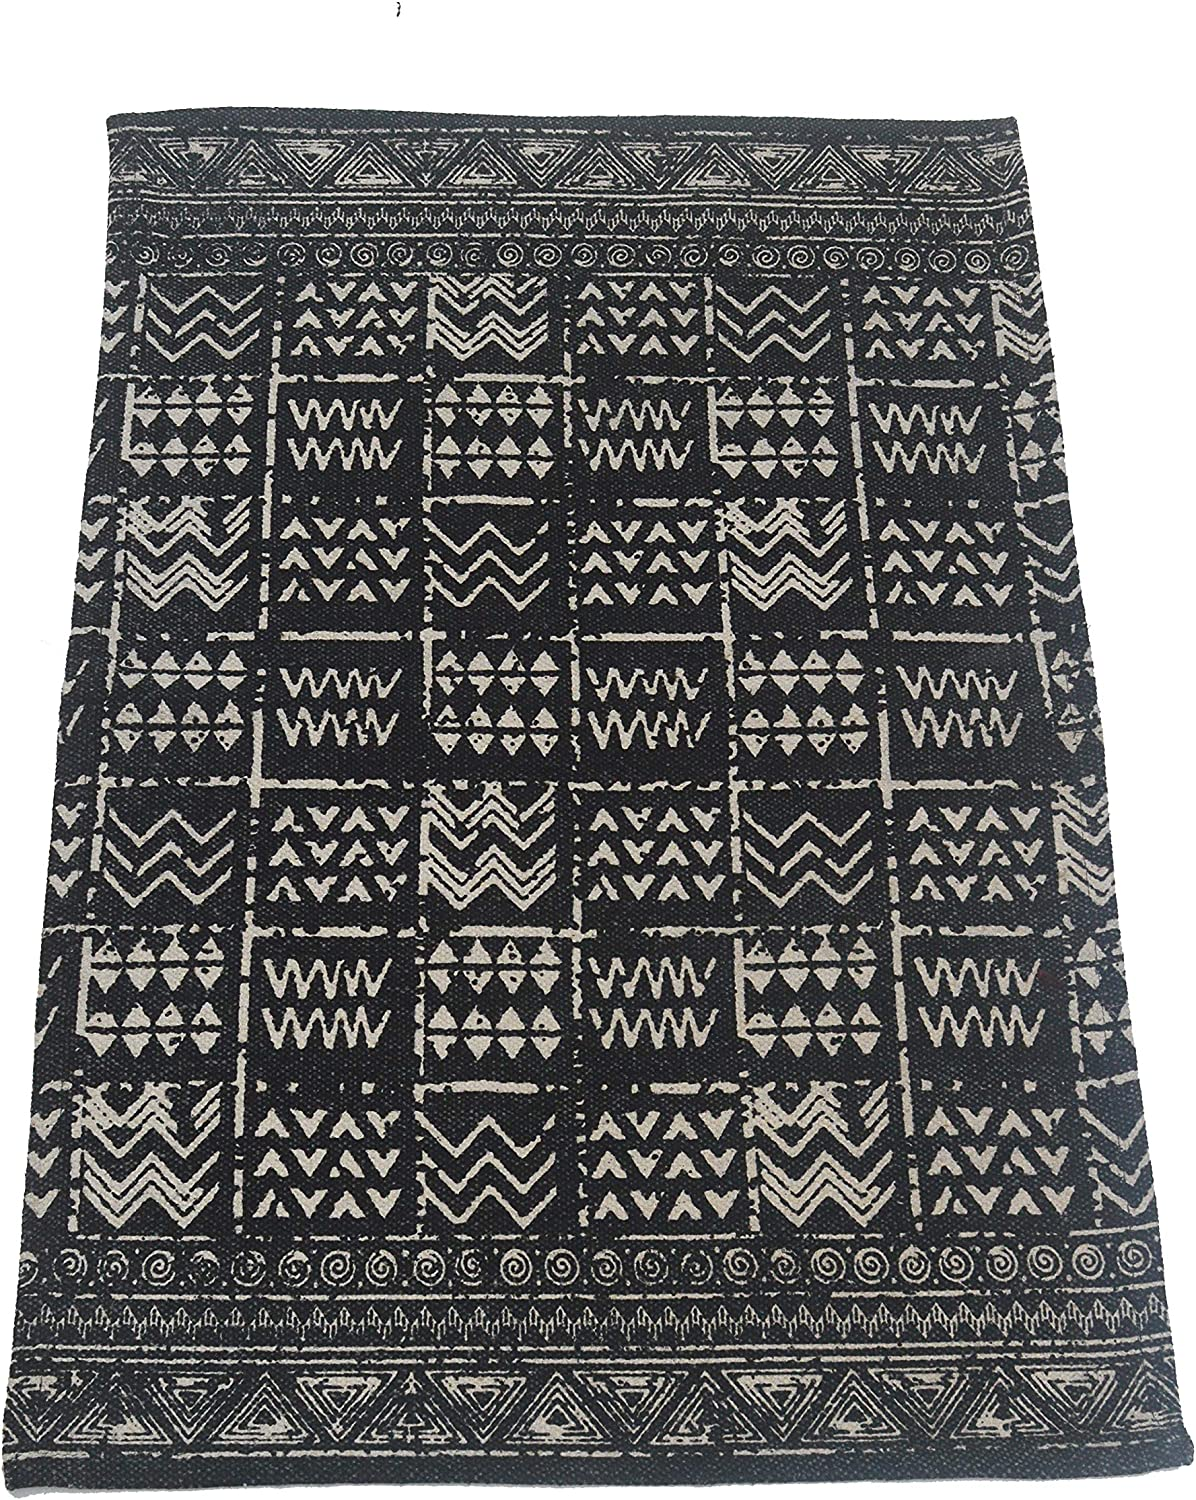 """CHARDIN HOME: Cleopatra Cotton Rug - Hand Woven, Printed & Stone Washed Rug for Entryway, Bedroom, Bathroom, Kitchen, Laundry Room. Machine Washable 2'x3' (24""""x36""""), Black/White."""